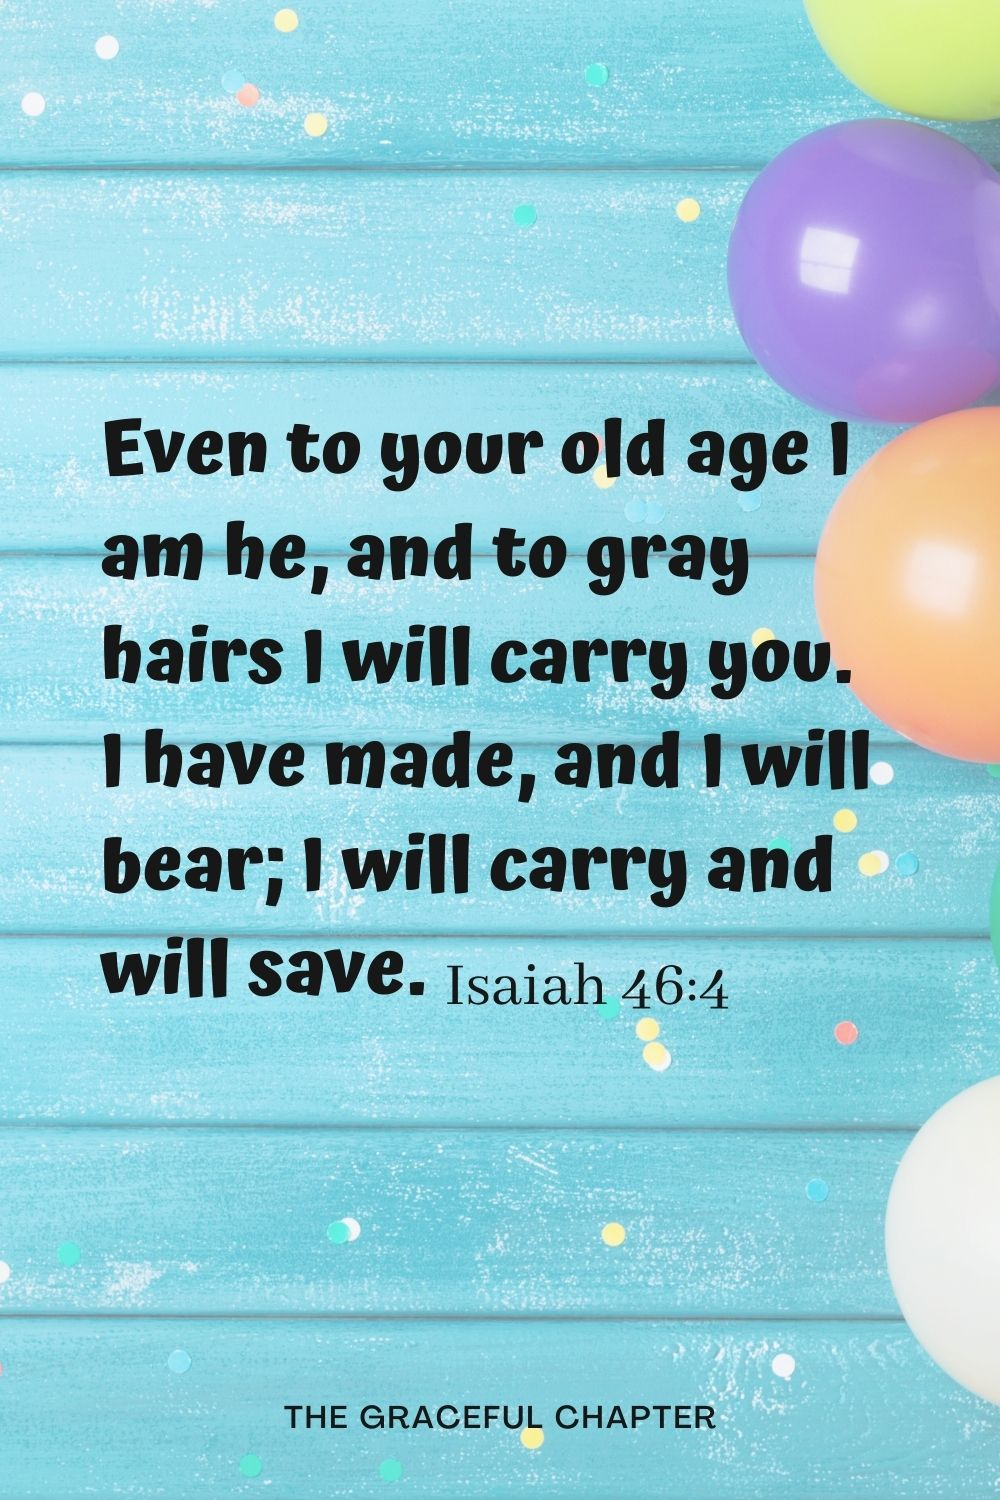 Even to your old age I am he, and to gray hairs I will carry you. I have made, and I will bear; I will carry and will save. Isaiah 46:4